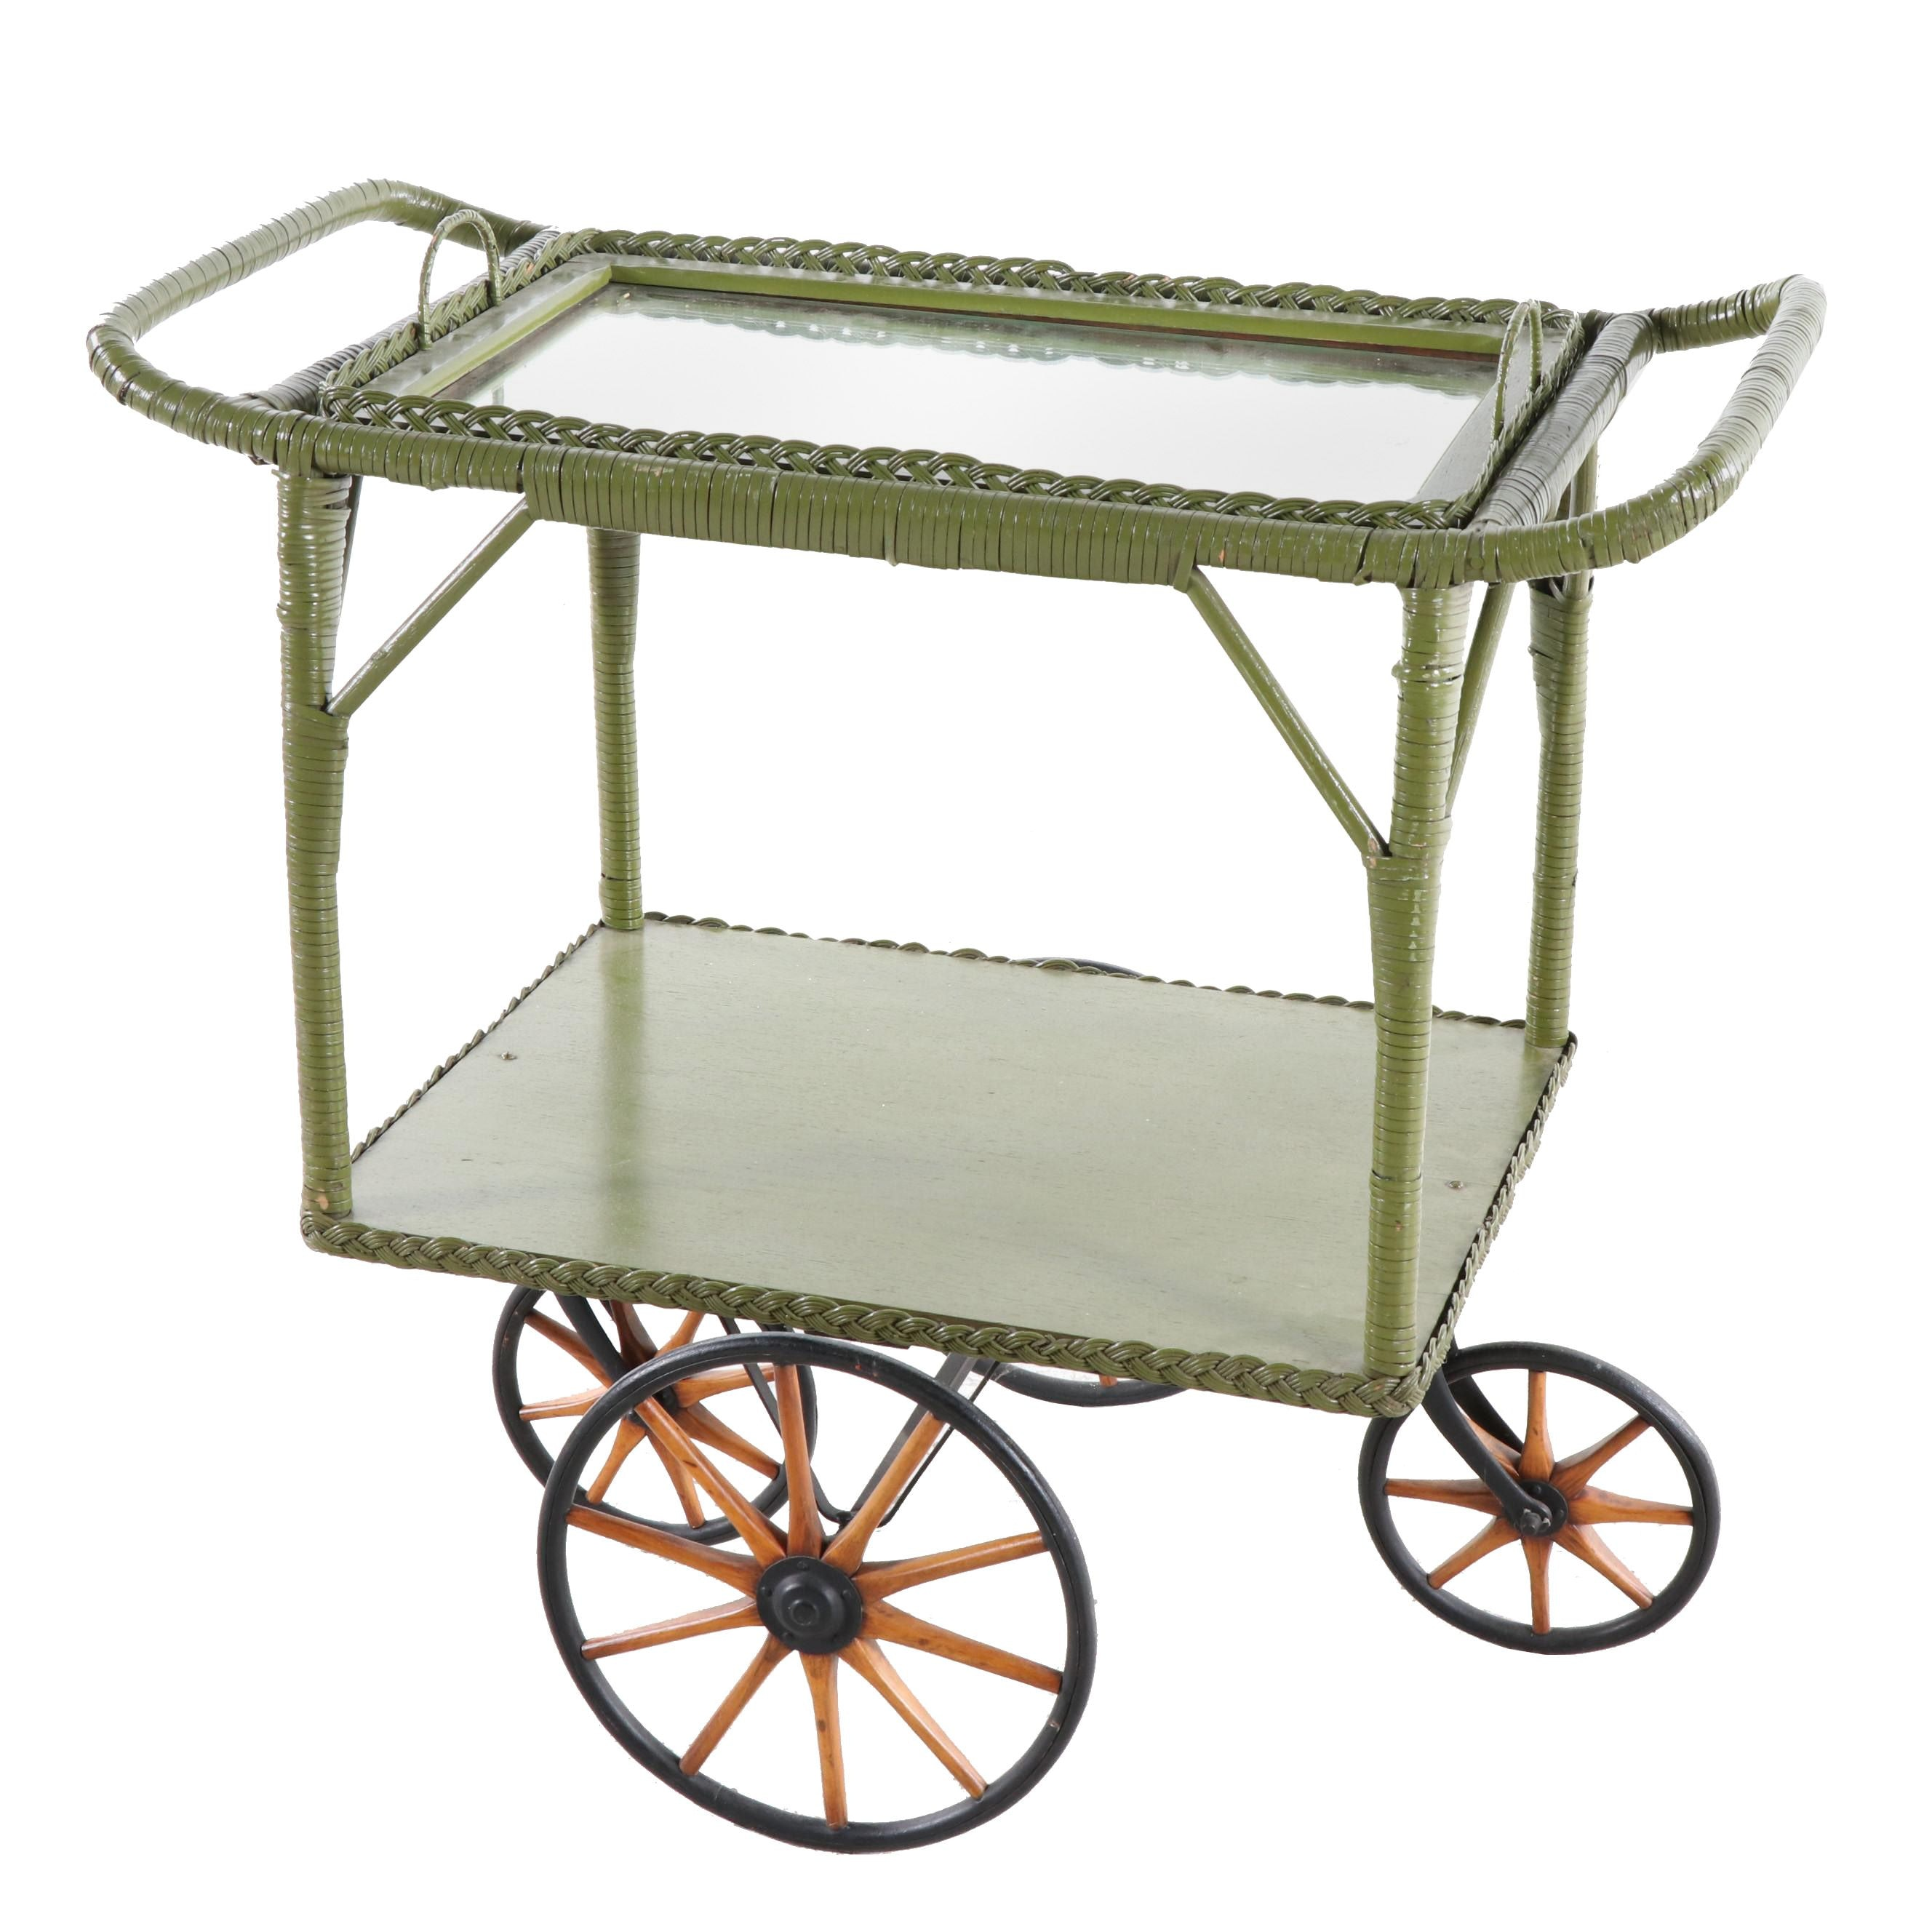 Painted Wicker and Wooden Bar Cart, Mid-20th Century